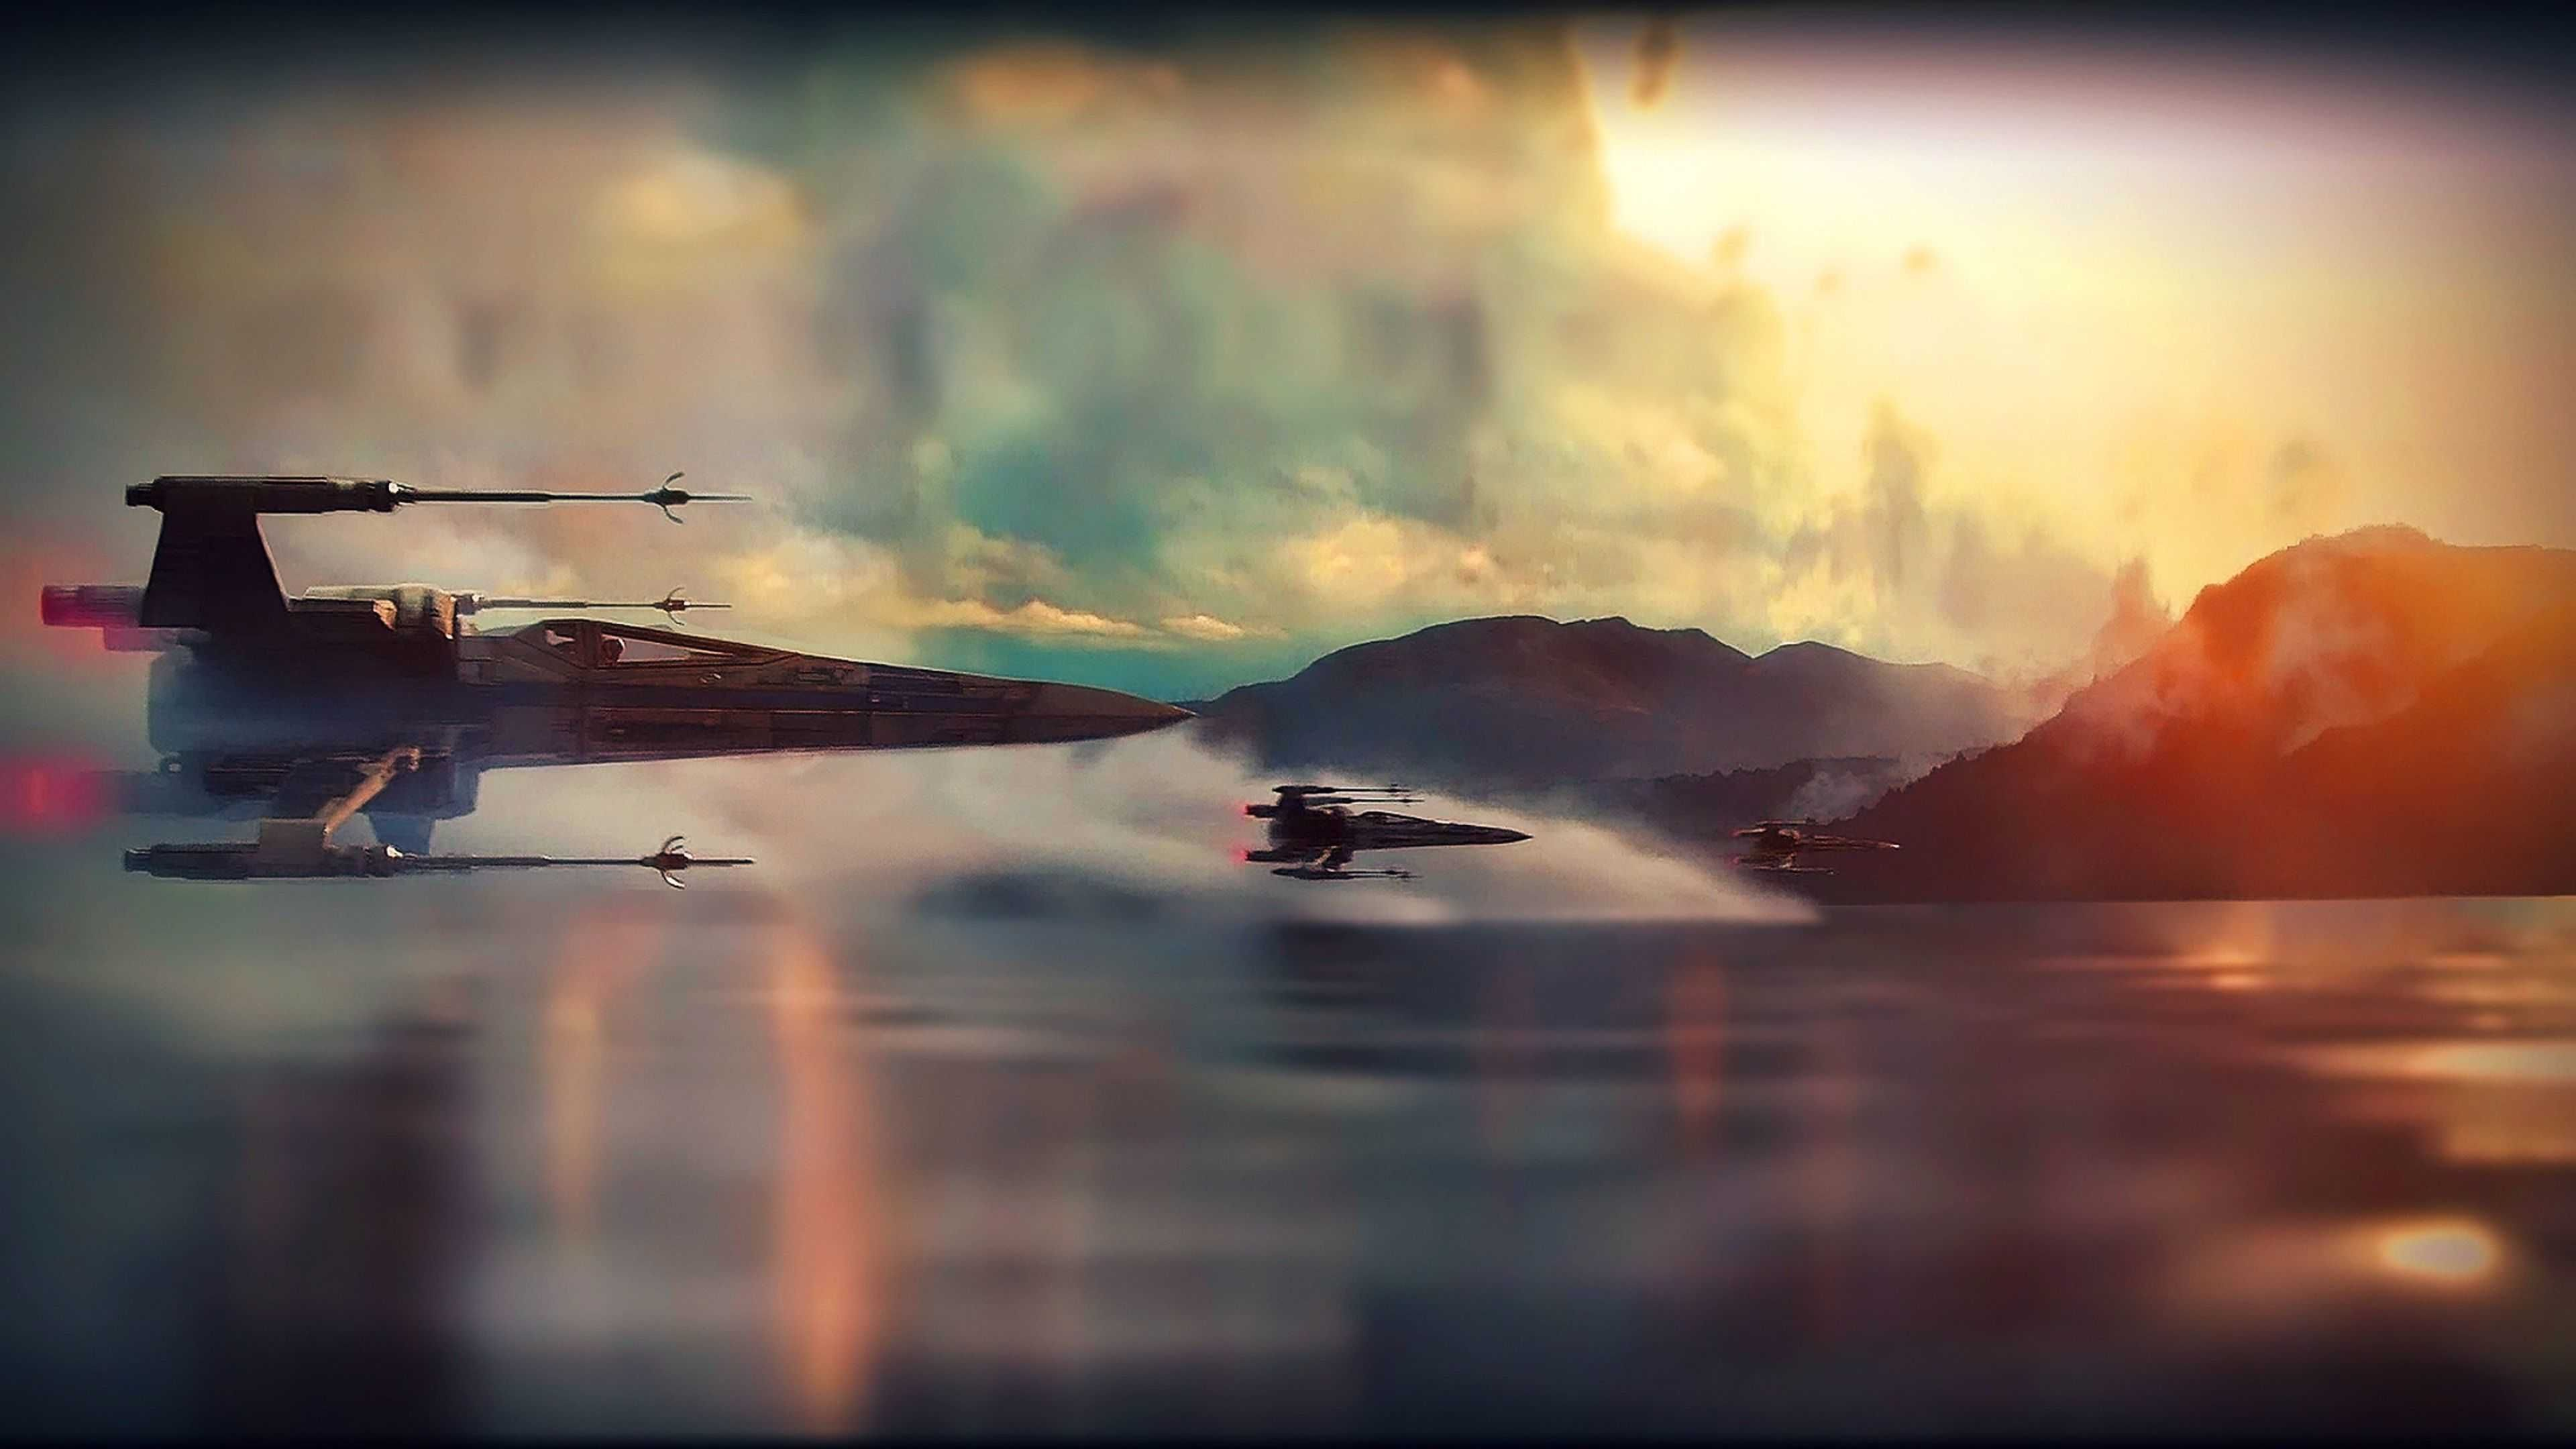 4k wallpaper star wars - http://hdwallpaper/4k-wallpaper-star